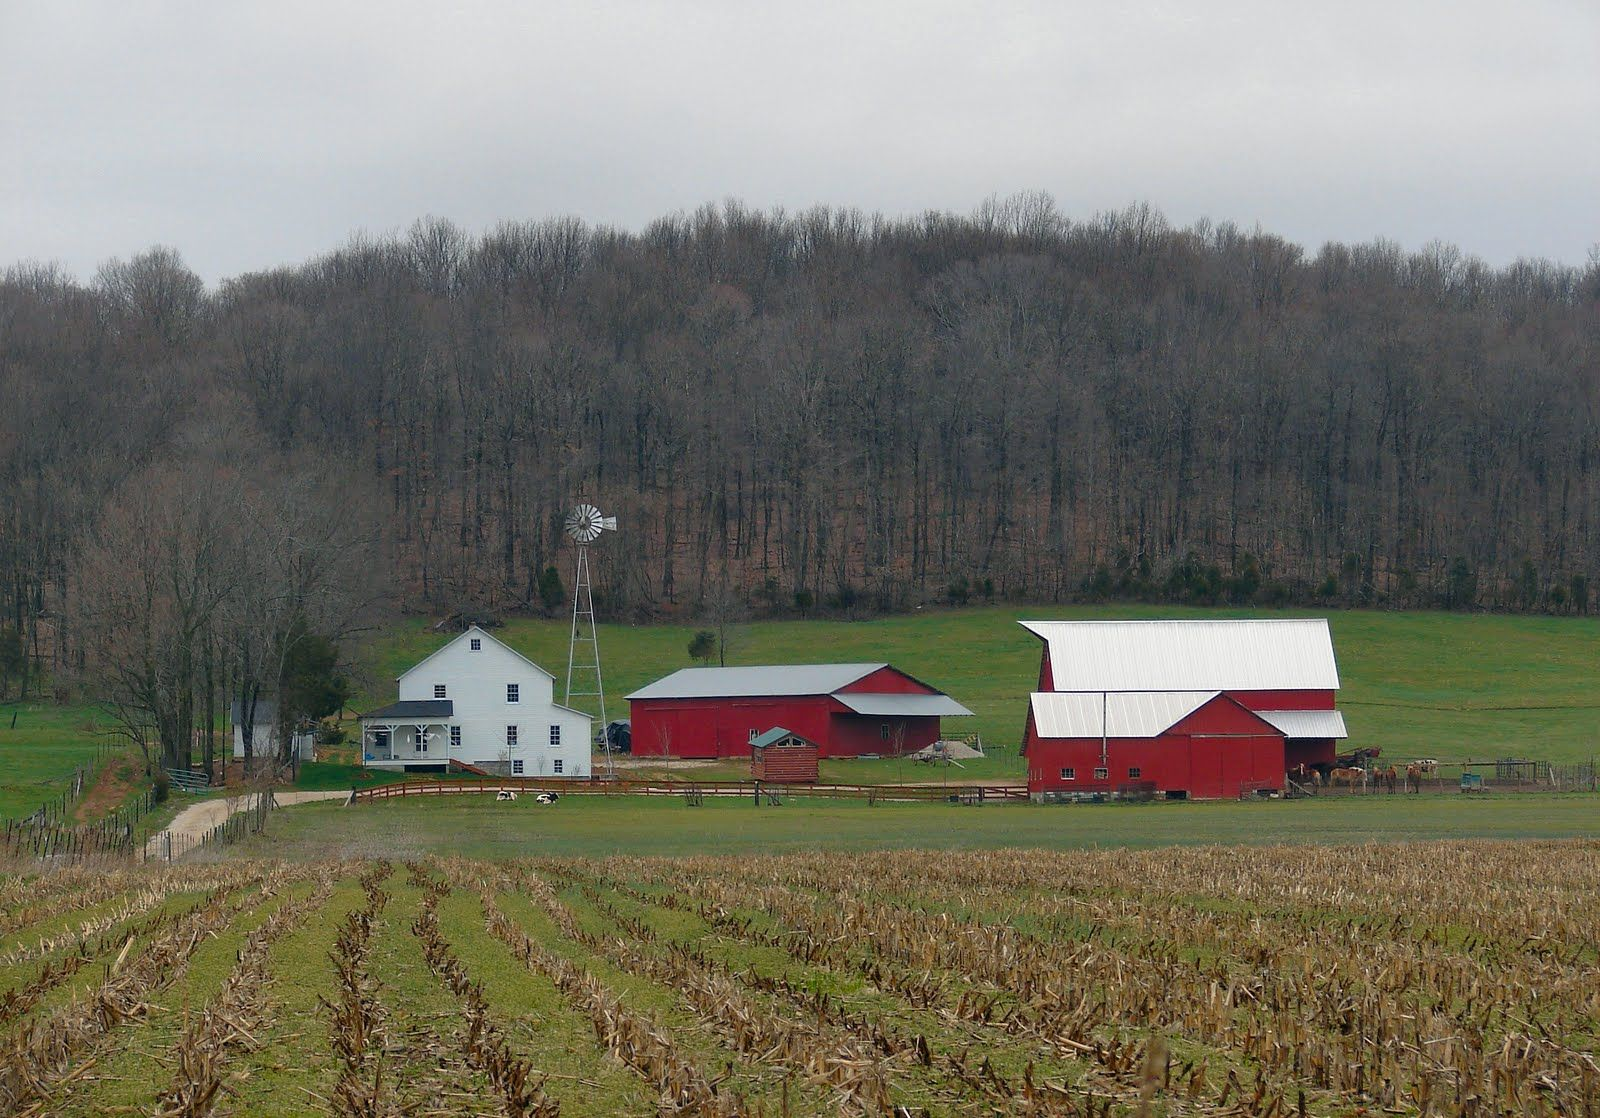 A farm in Putnam county, Indiana. Amish. | Farms and farm houses ...